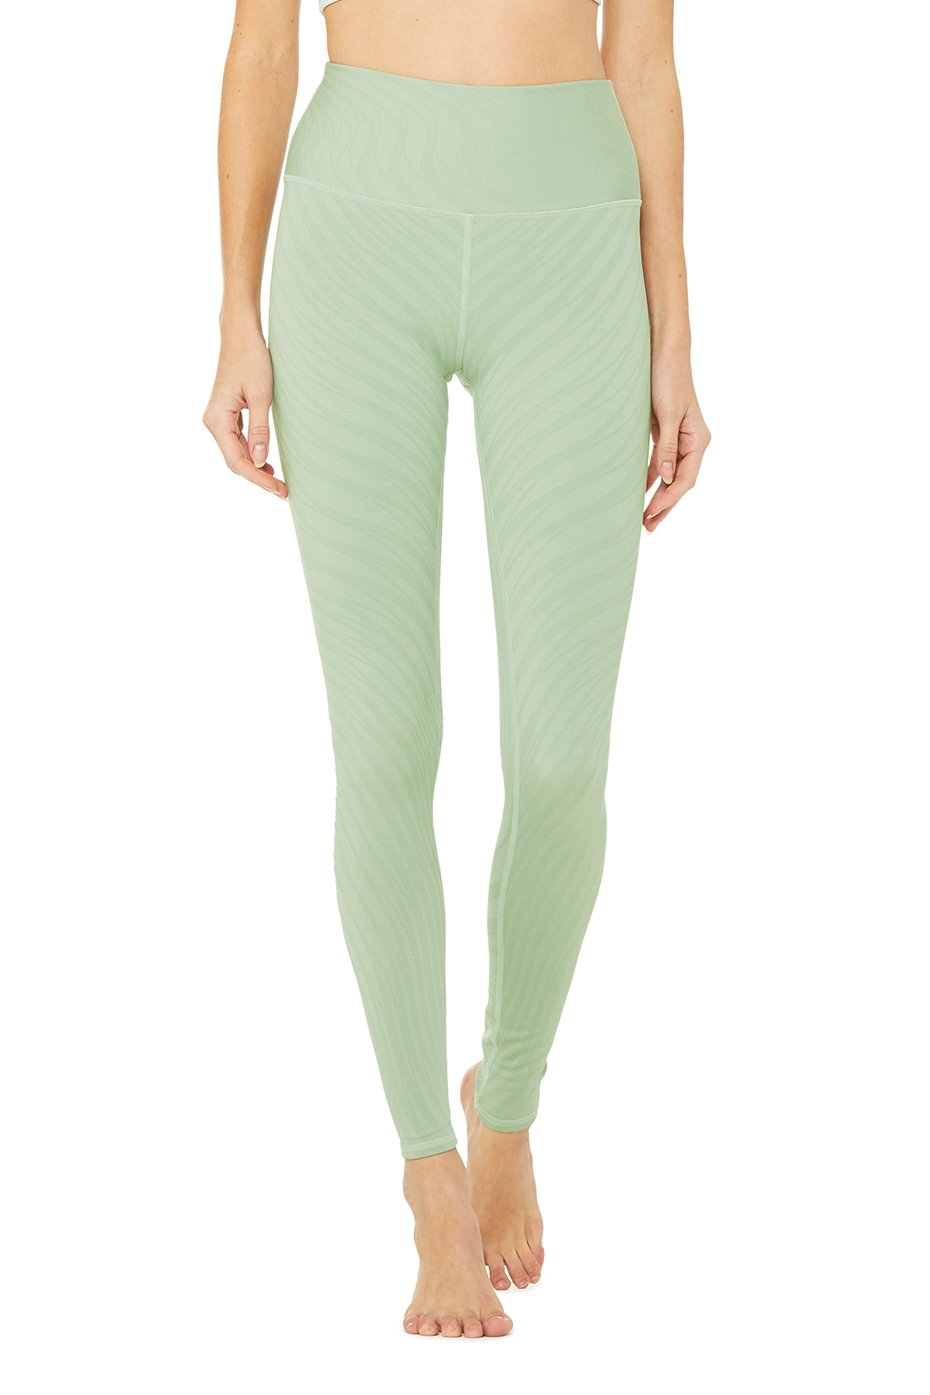 Alo Yoga High-Waist Airbrush Legging - Pistachio Waves